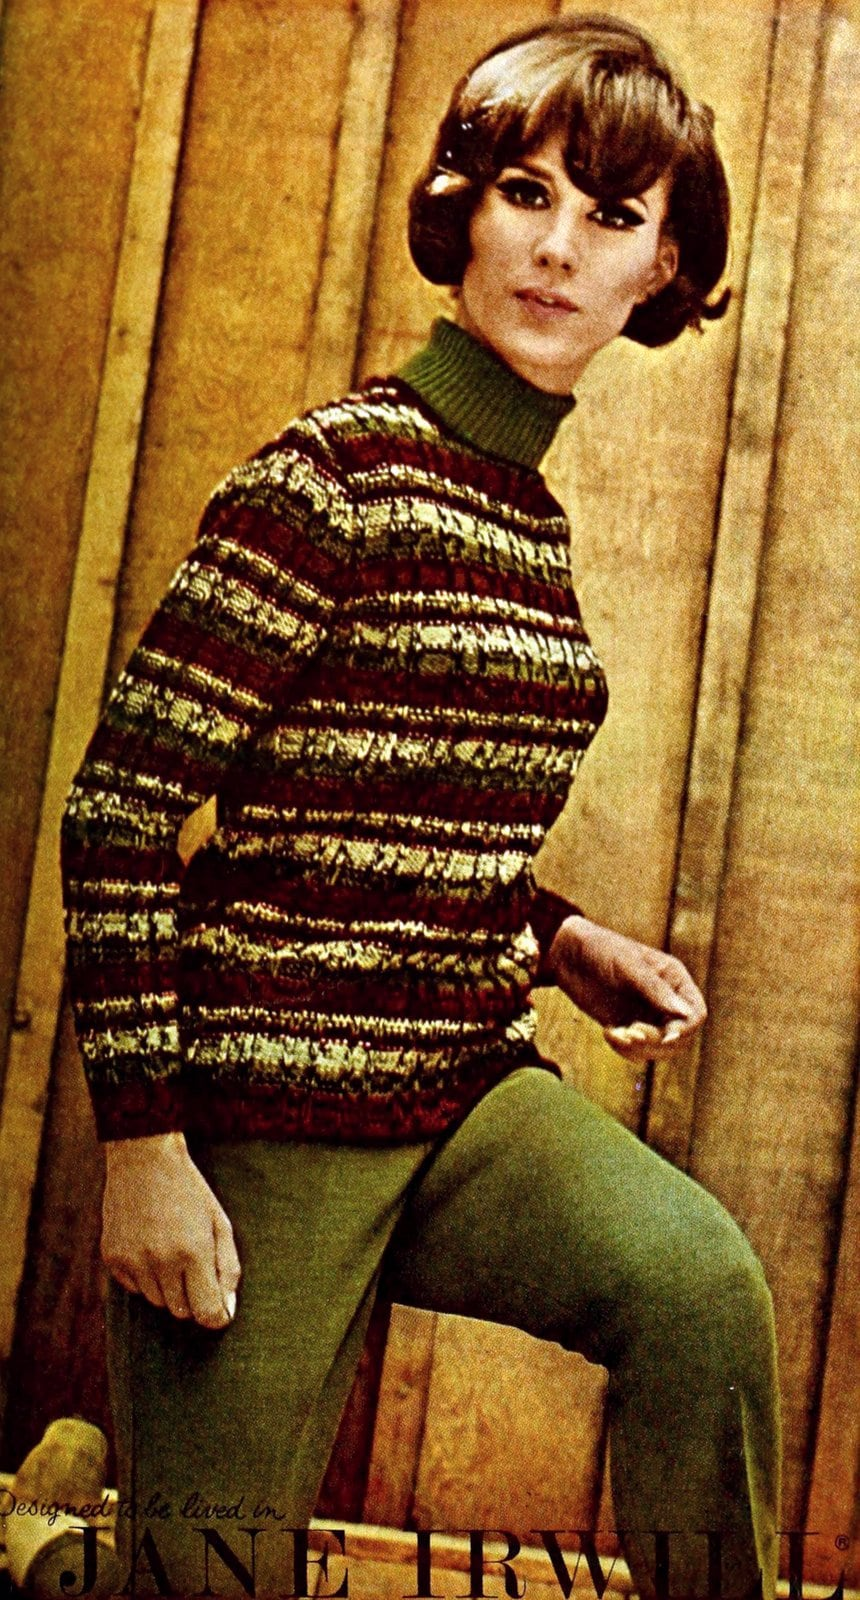 Striped sweater with turtleneck - Greens and browns (1965)